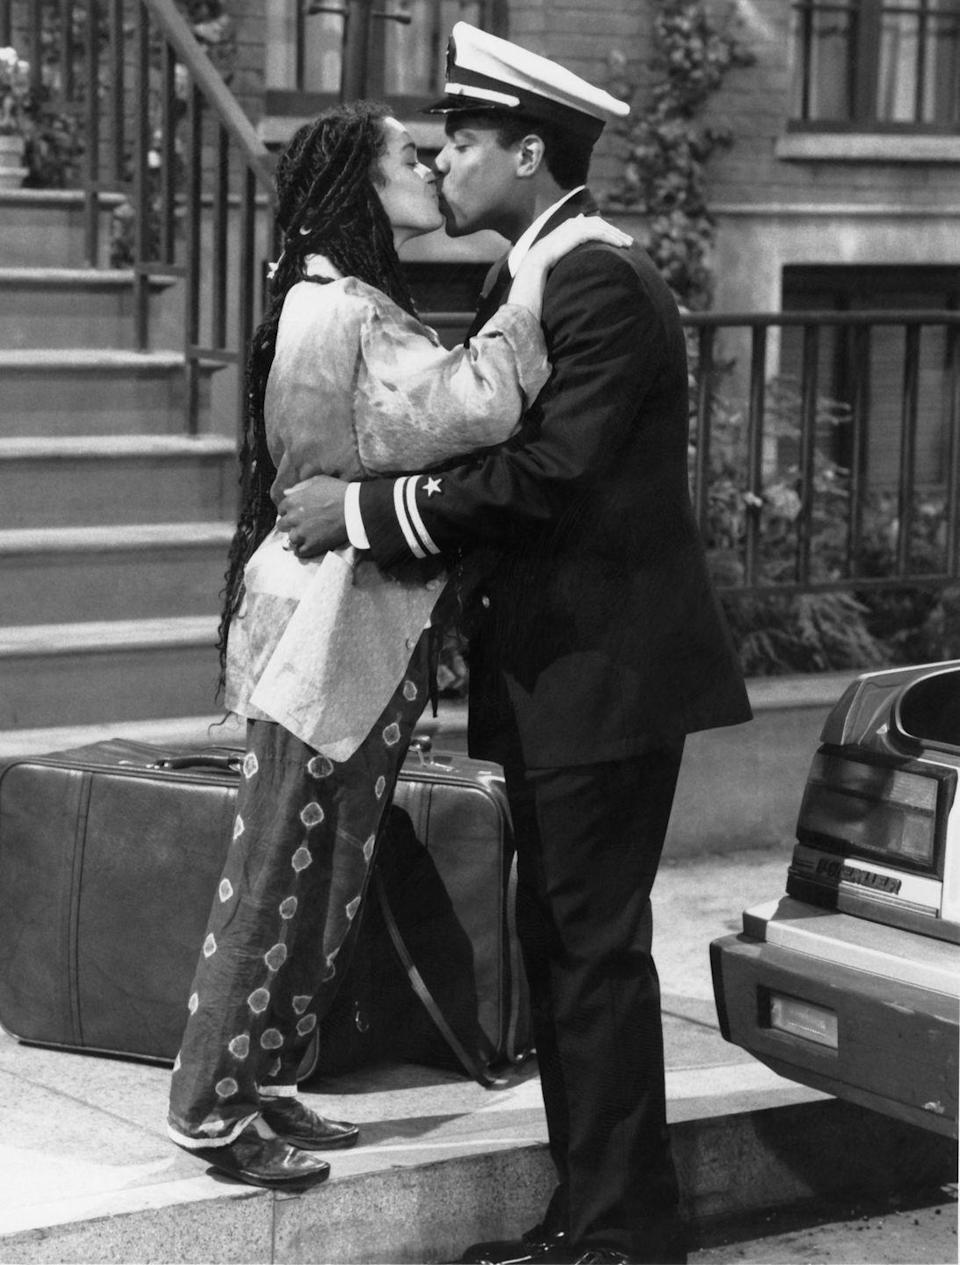 <p>The world was introduced to Lisa Bonet in 1984 when she took on the role of Denise Huxable on <em>The Cosby Show</em>. Denise was a style icon, always experimenting and playing with new ideas, and her hair was no different. The show ran for seven seasons and you can watch Bonet's hair journey throughout. From season one when she was playing around with straight styles to her final season wear she was sporting her signature long locs, Lisa Bonet reminds us that our hair is so versatile and that is the beauty of it. </p>